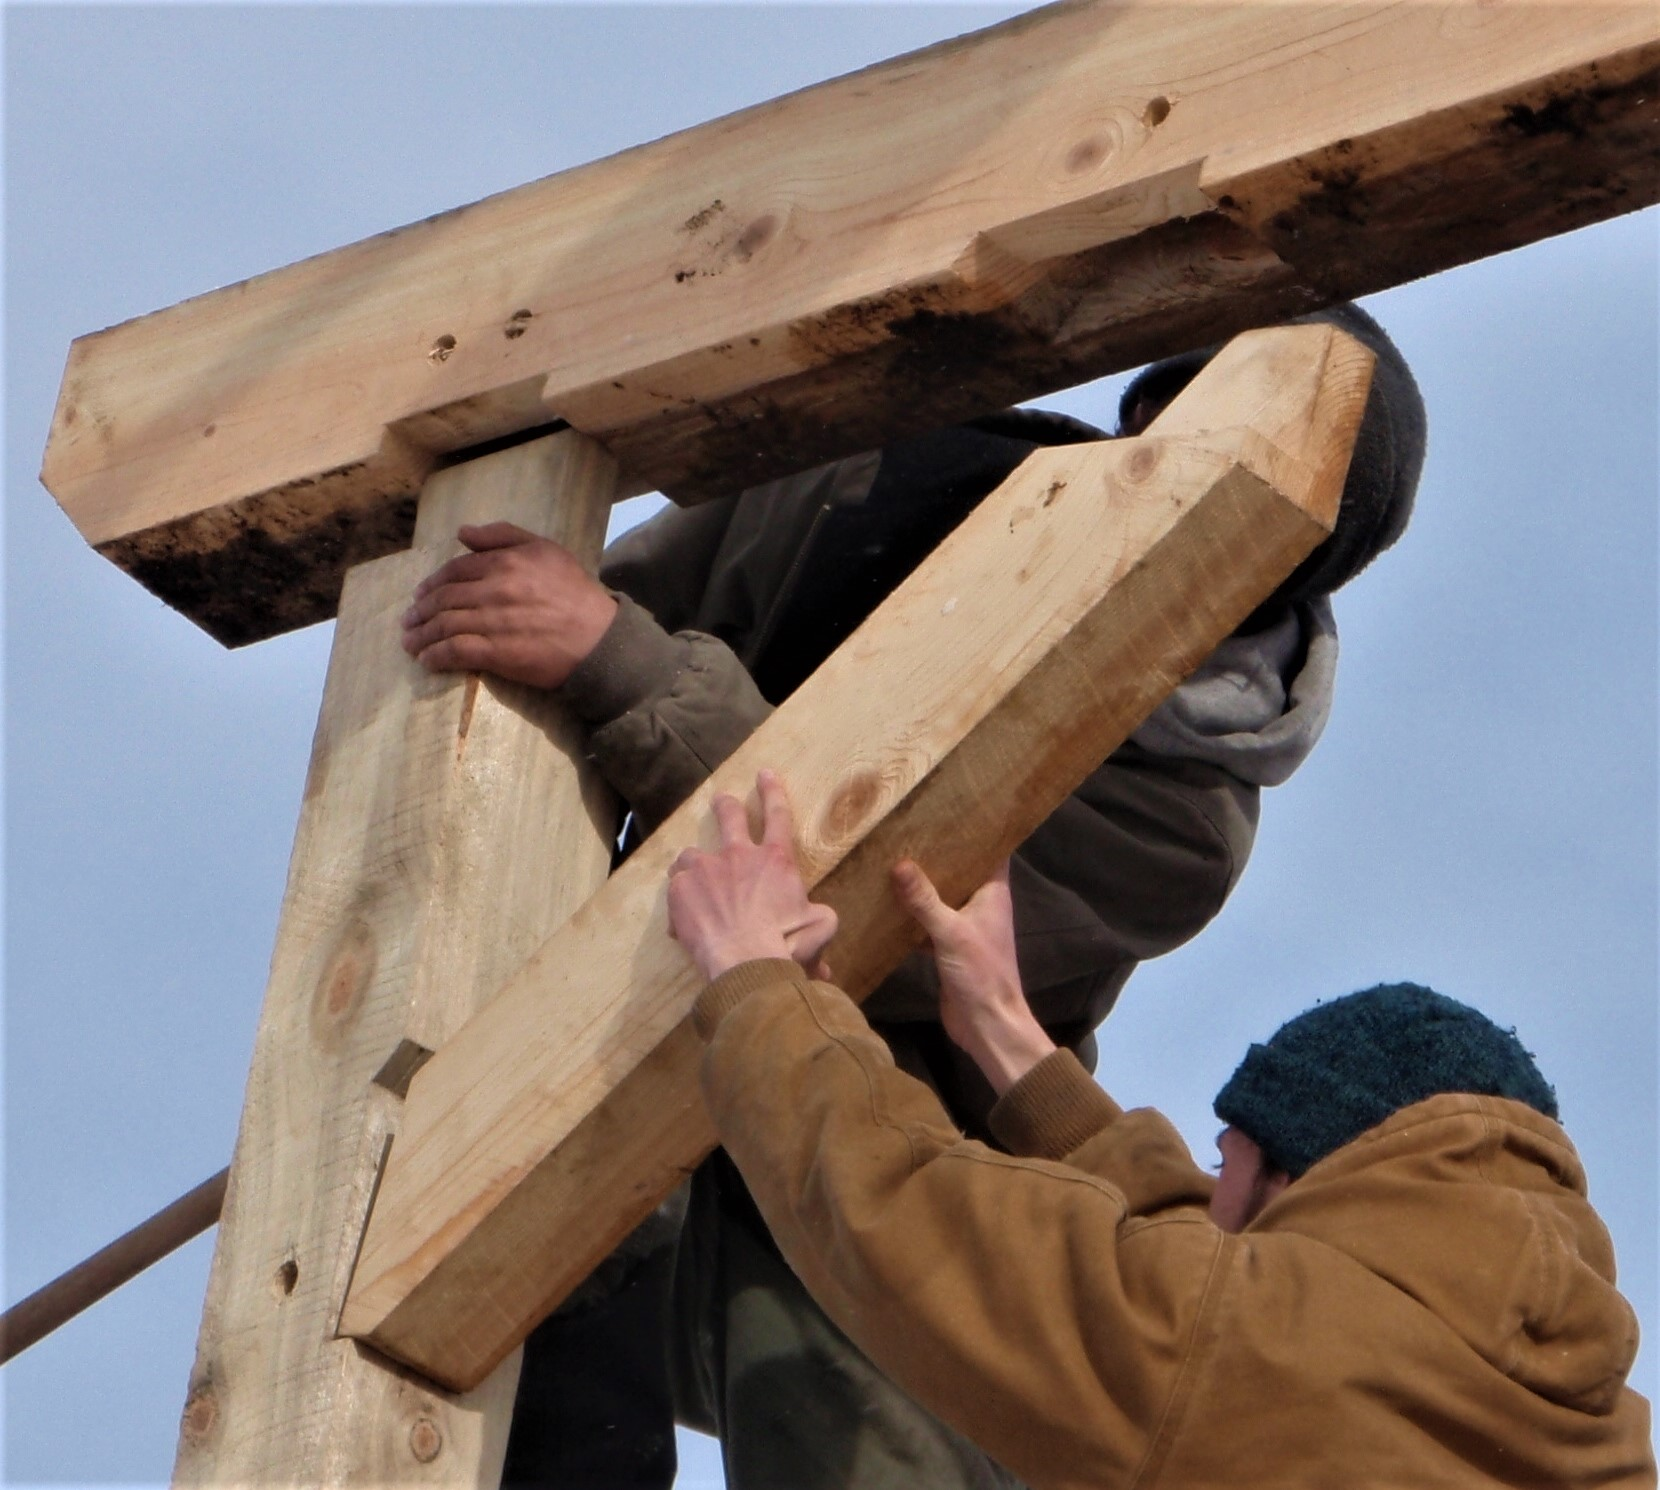 Intro To Traditional Timber Framing - May 2 & May 4, 2019Join us for a two part course that involves an evening lecture on May 2 at the Missoula Lifelong Learning Center and a hands on session May 4 on the northside at Bad Goat Forest Products.